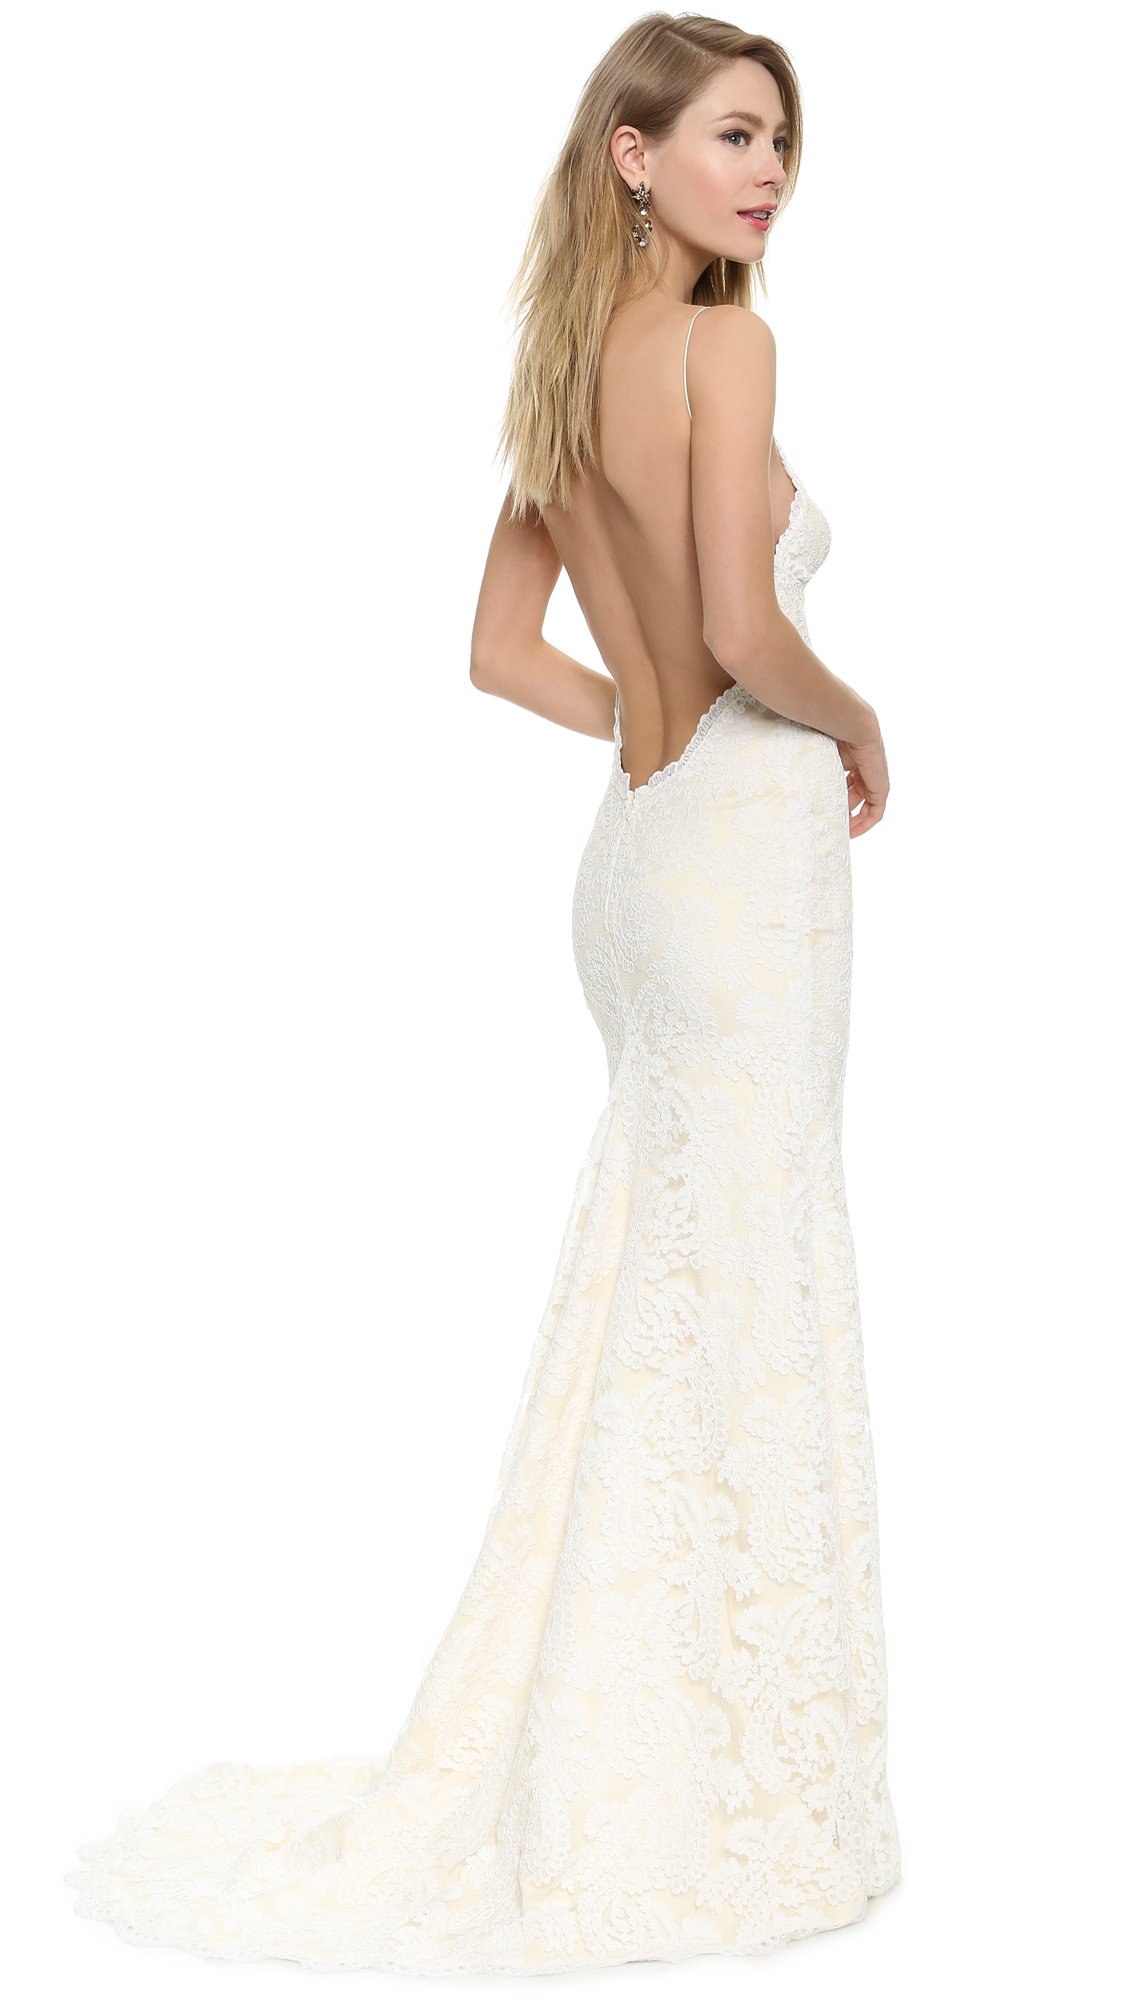 May wedding dress colors ivory